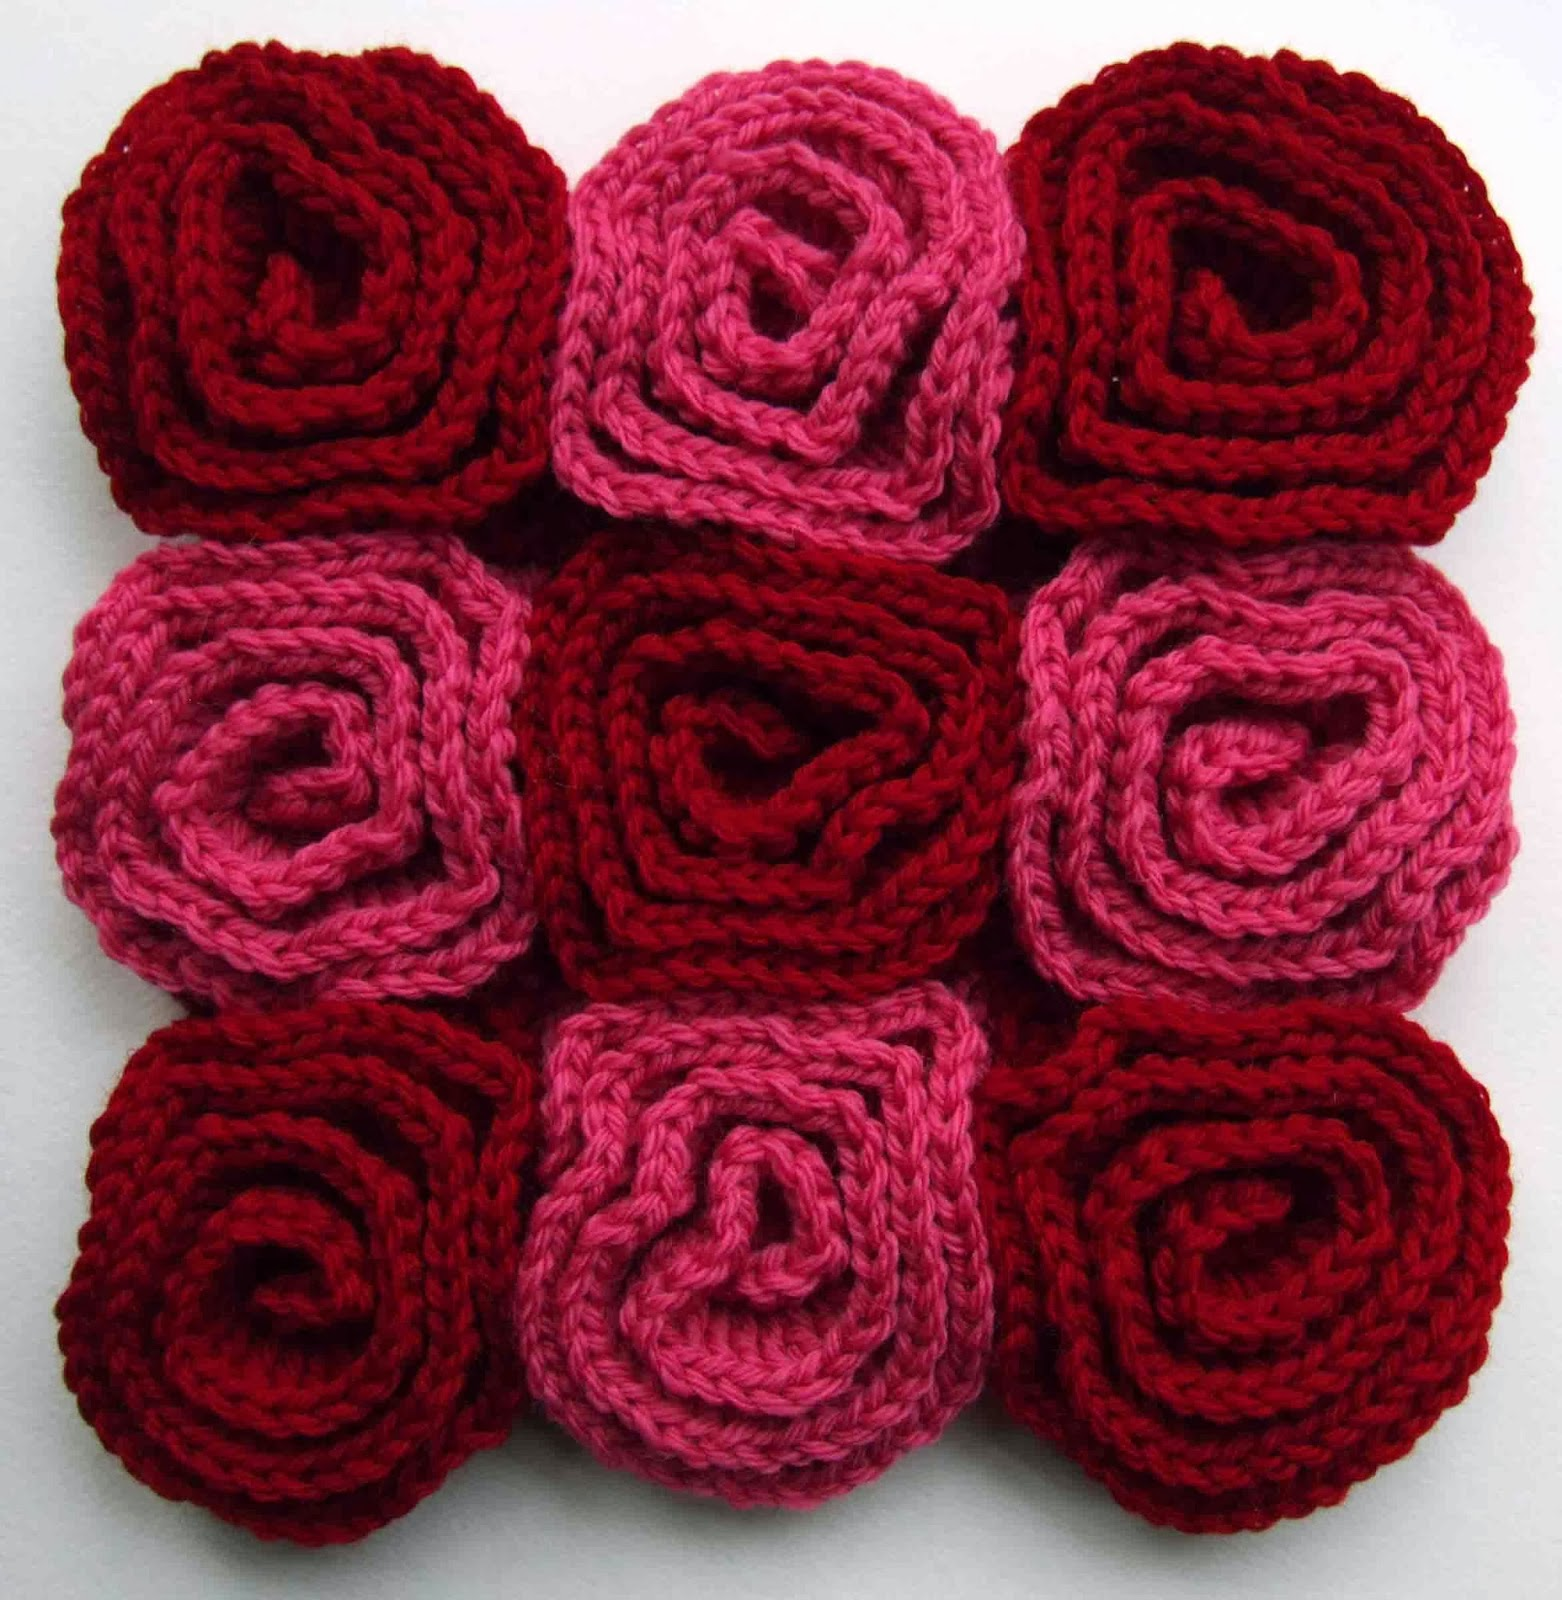 Free Crochet Rose Square Pattern : WoolnHook: Rose Square Crochet Pattern